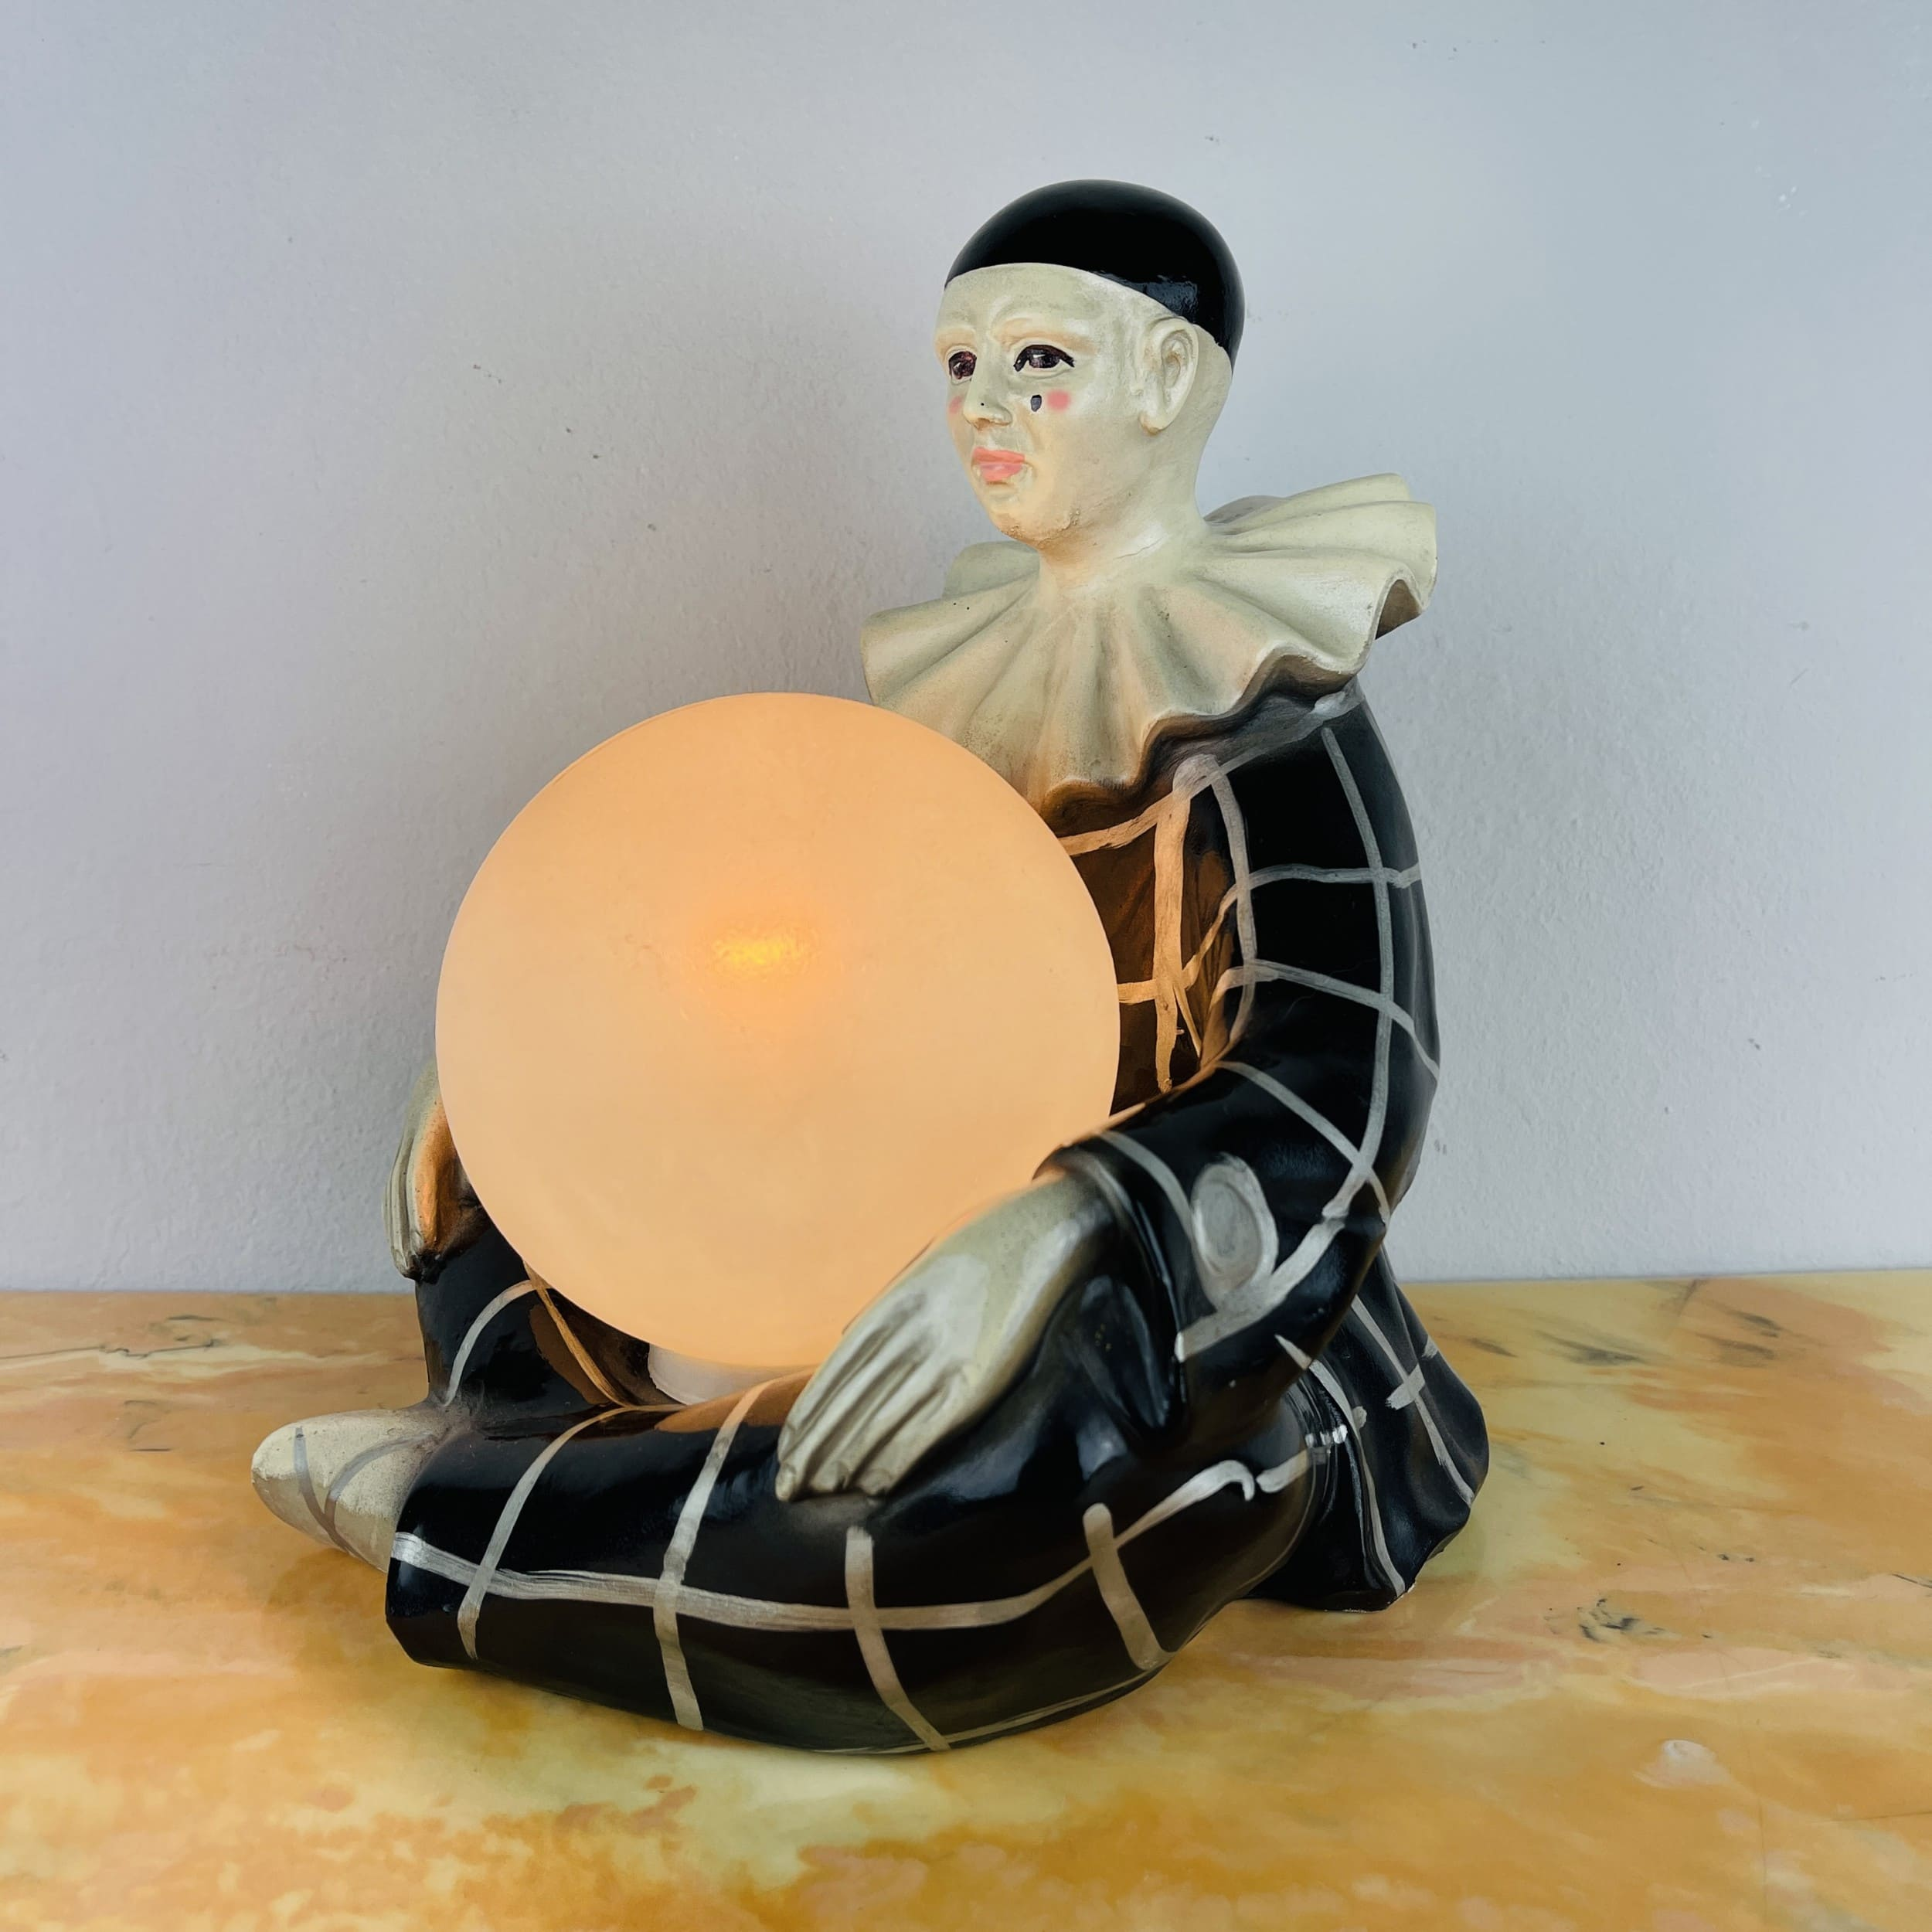 Vintage French ceramic table lamp Pierrot by Regal 1960s Clown Harlequin Mid-century night light retro home decor